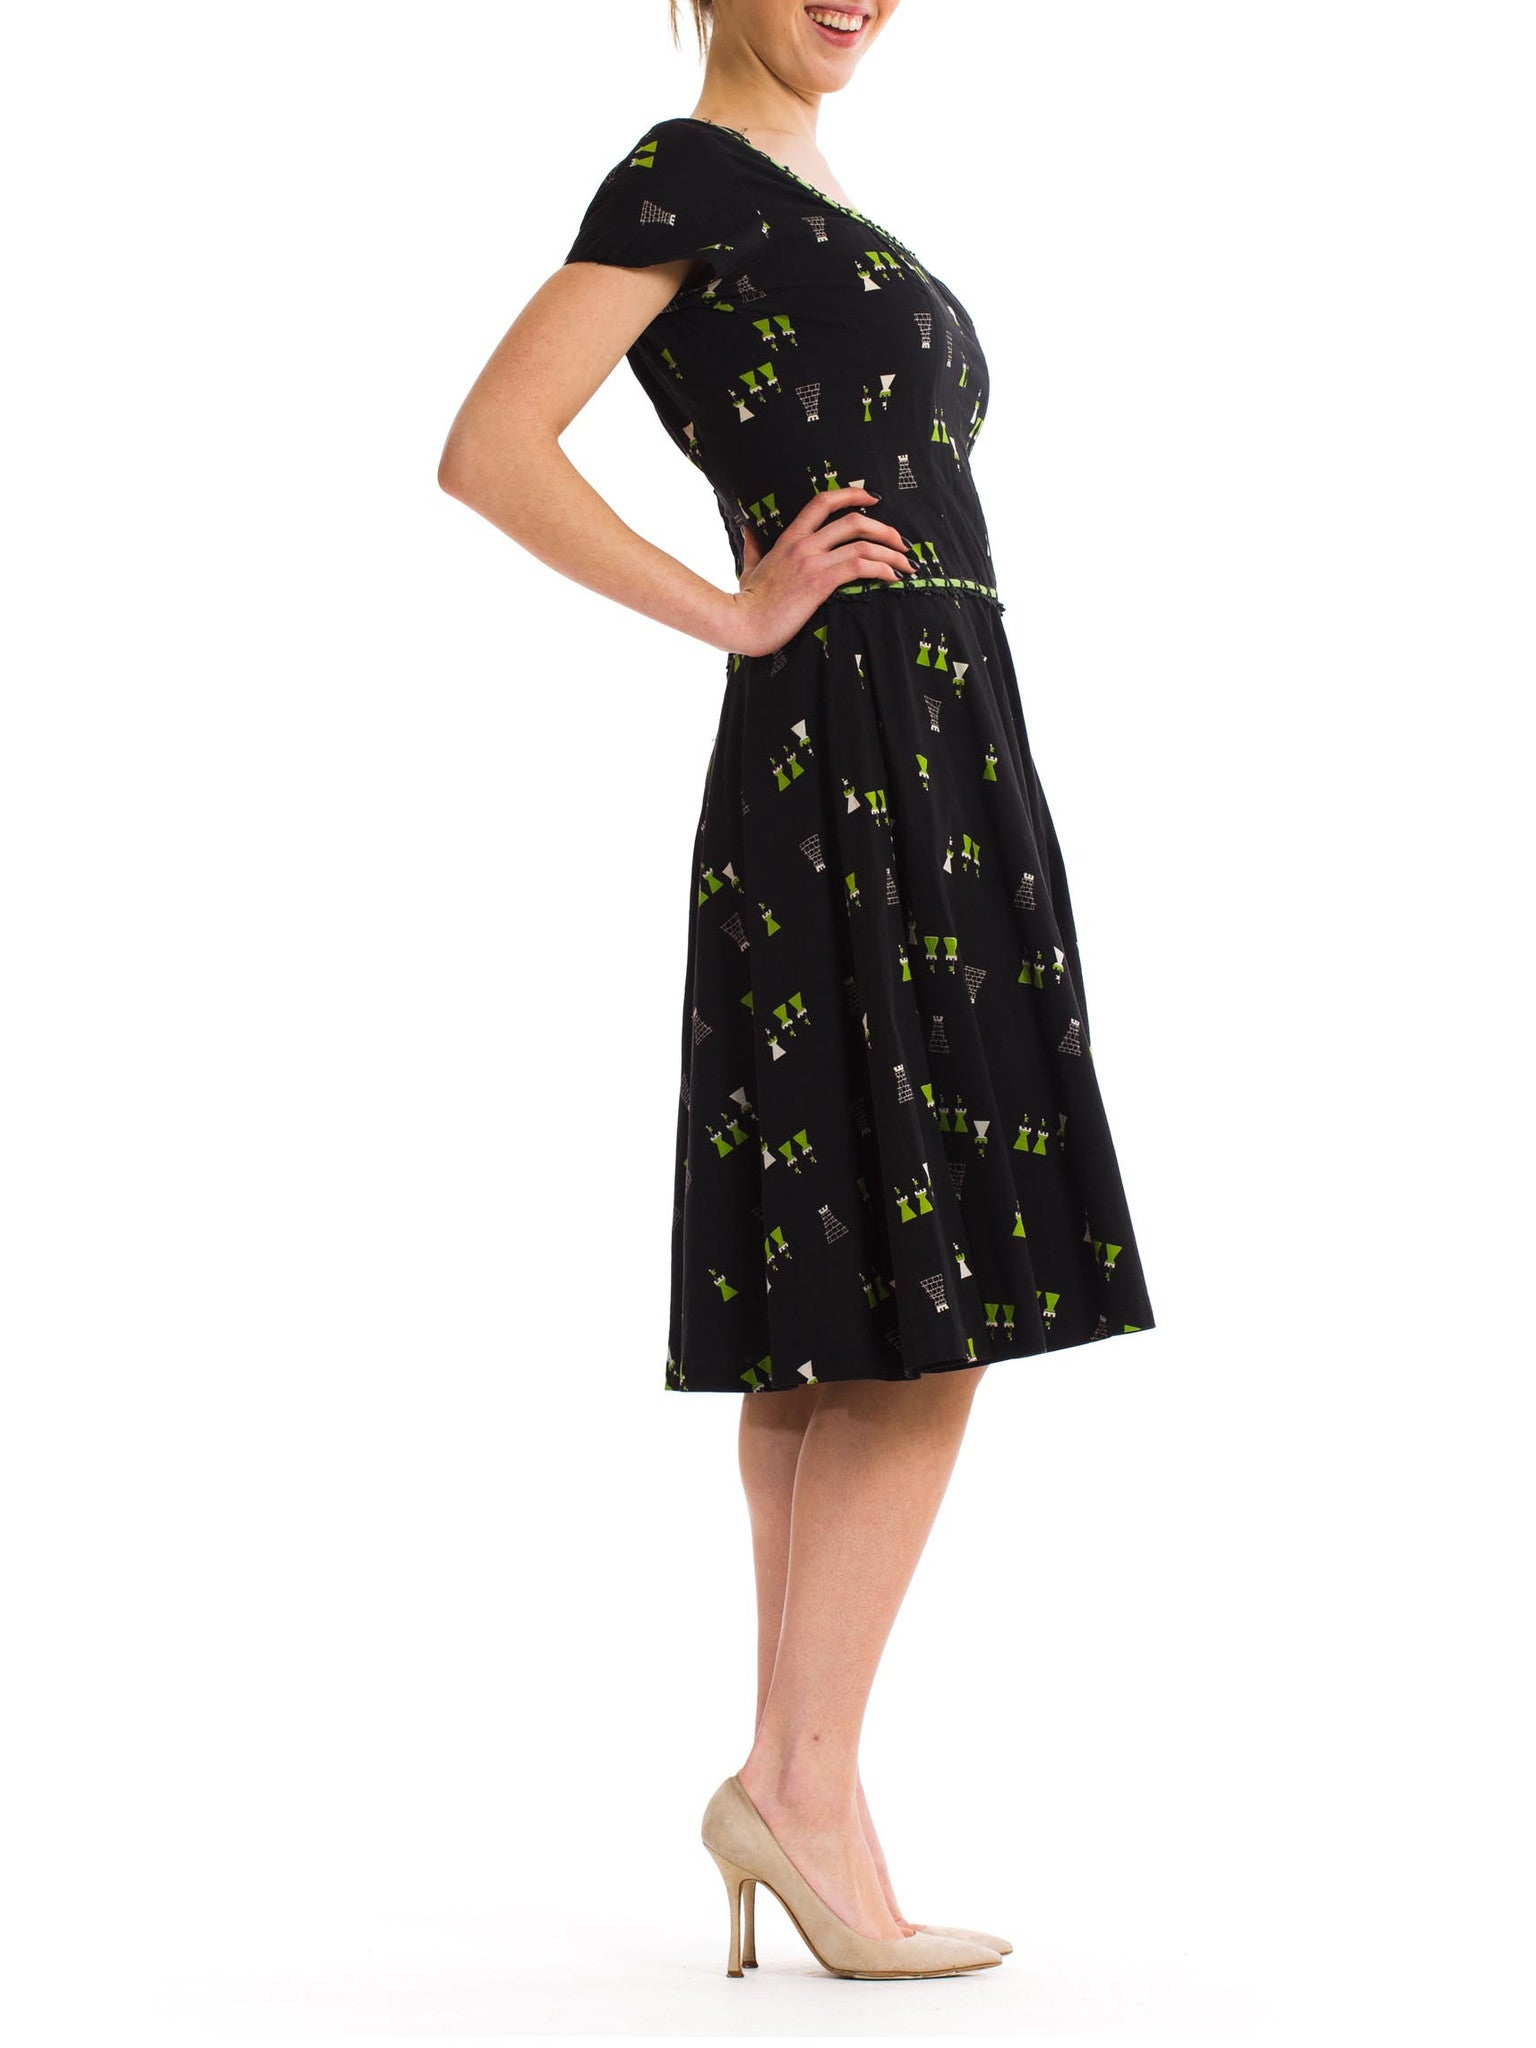 1950S Black Cotton Day Dress Printed With Cute Green Castles